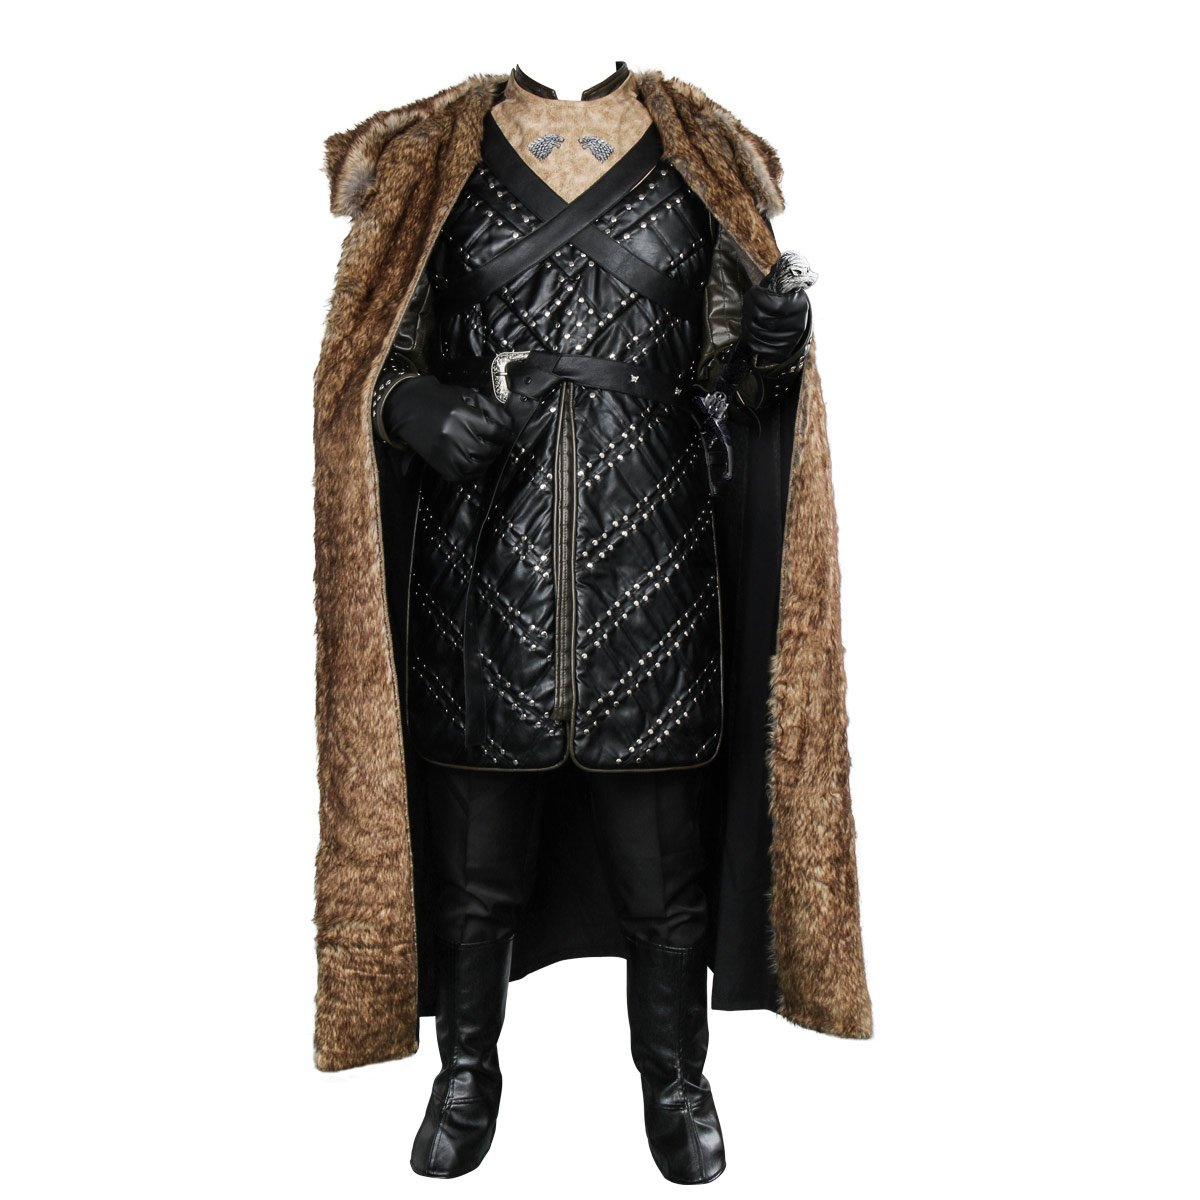 Got Deluxe Game Season 7 Jon Snow Cosplay Costume Armor Cloak Outfit (Large)